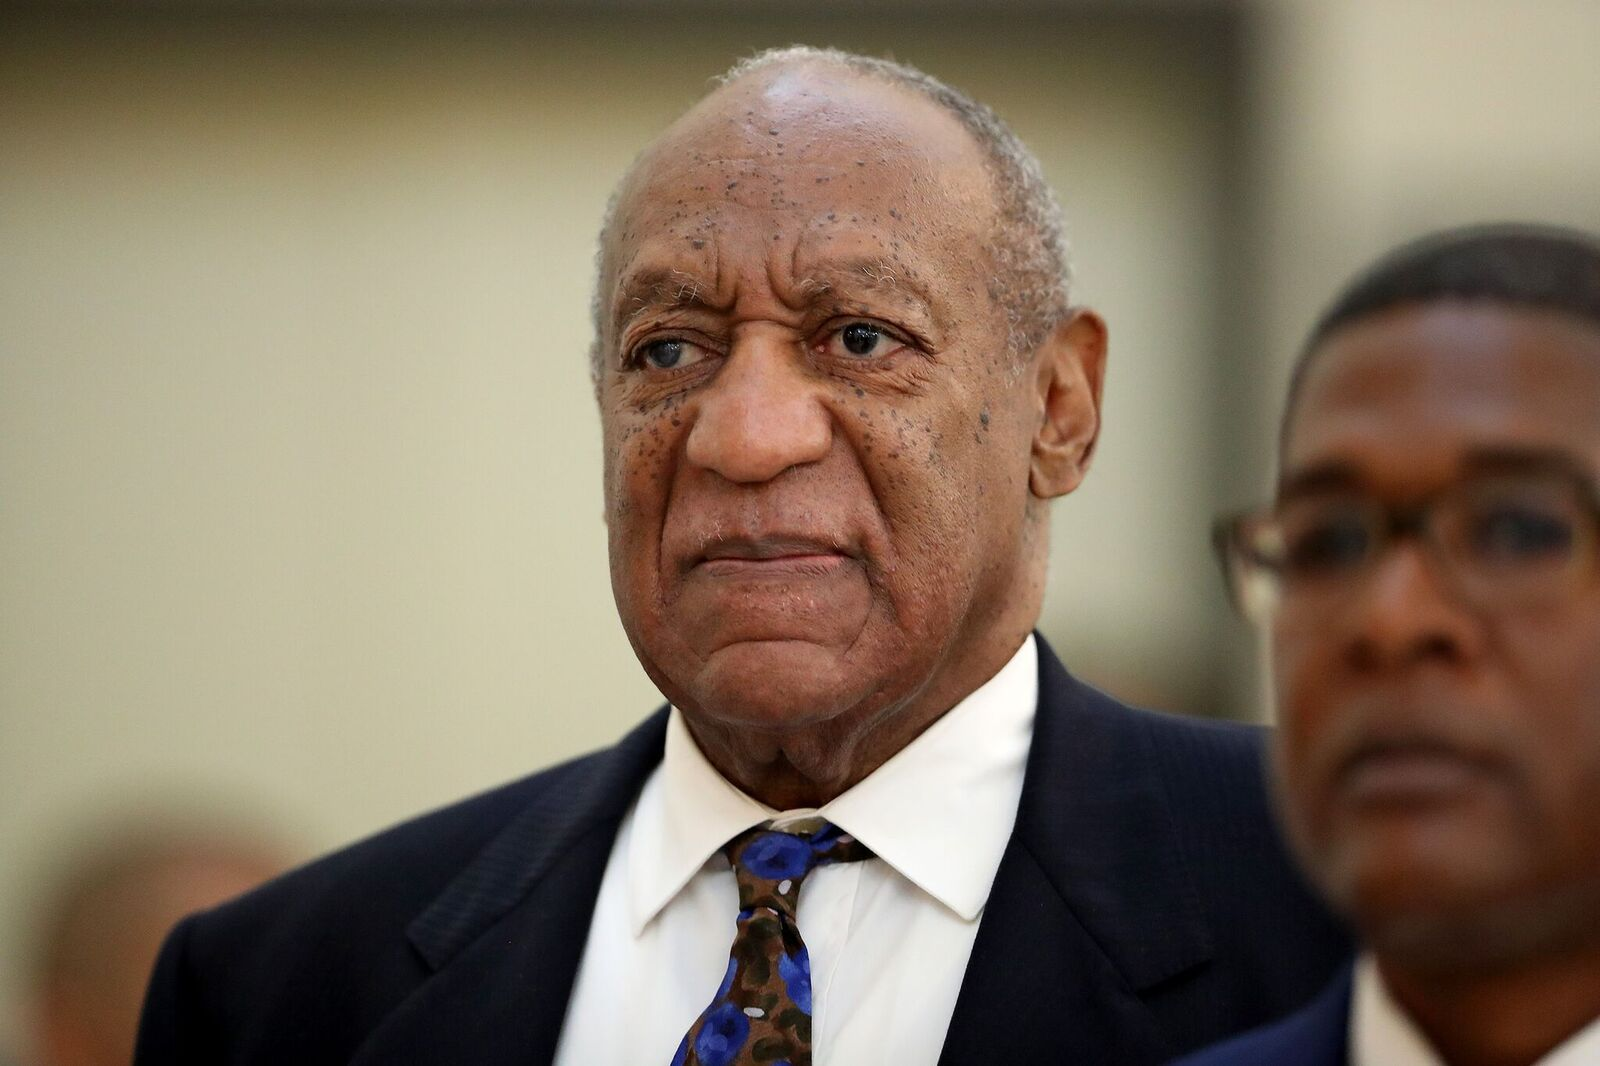 Bill Cosby gazing forward | Source: Getty Images